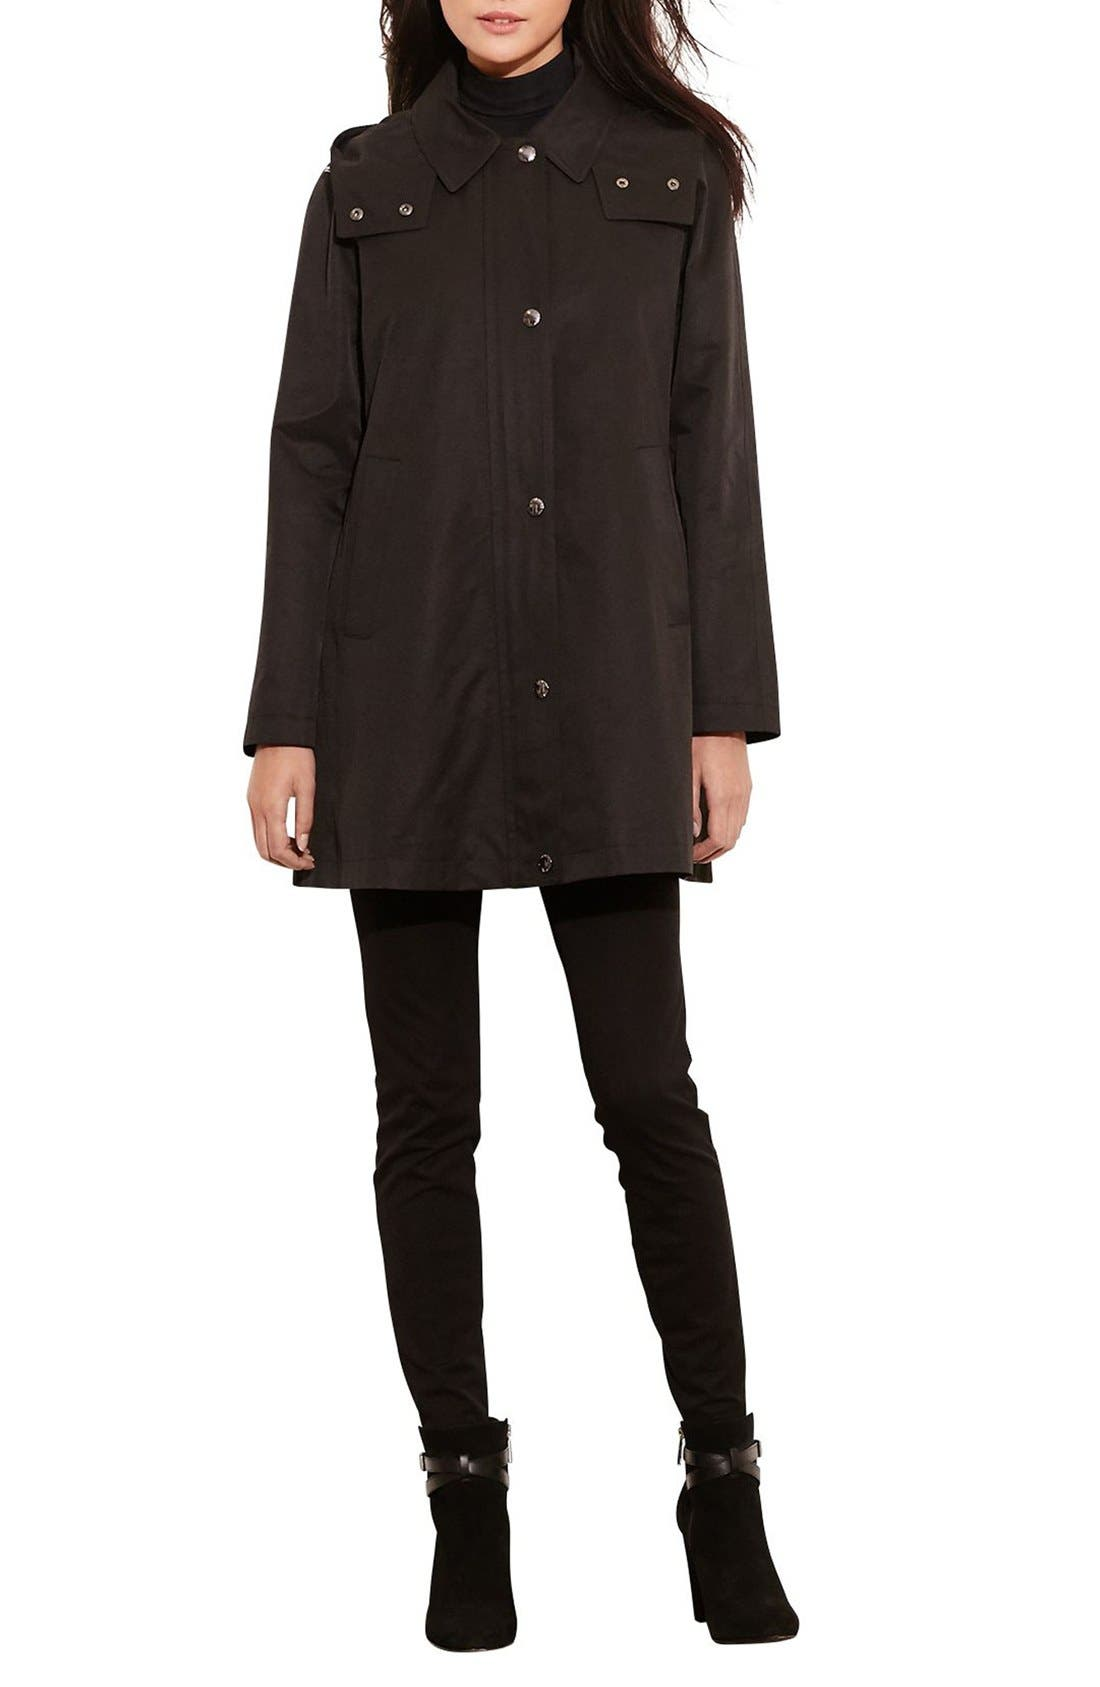 A-Line Jacket with Removable Liner,                         Main,                         color, 001